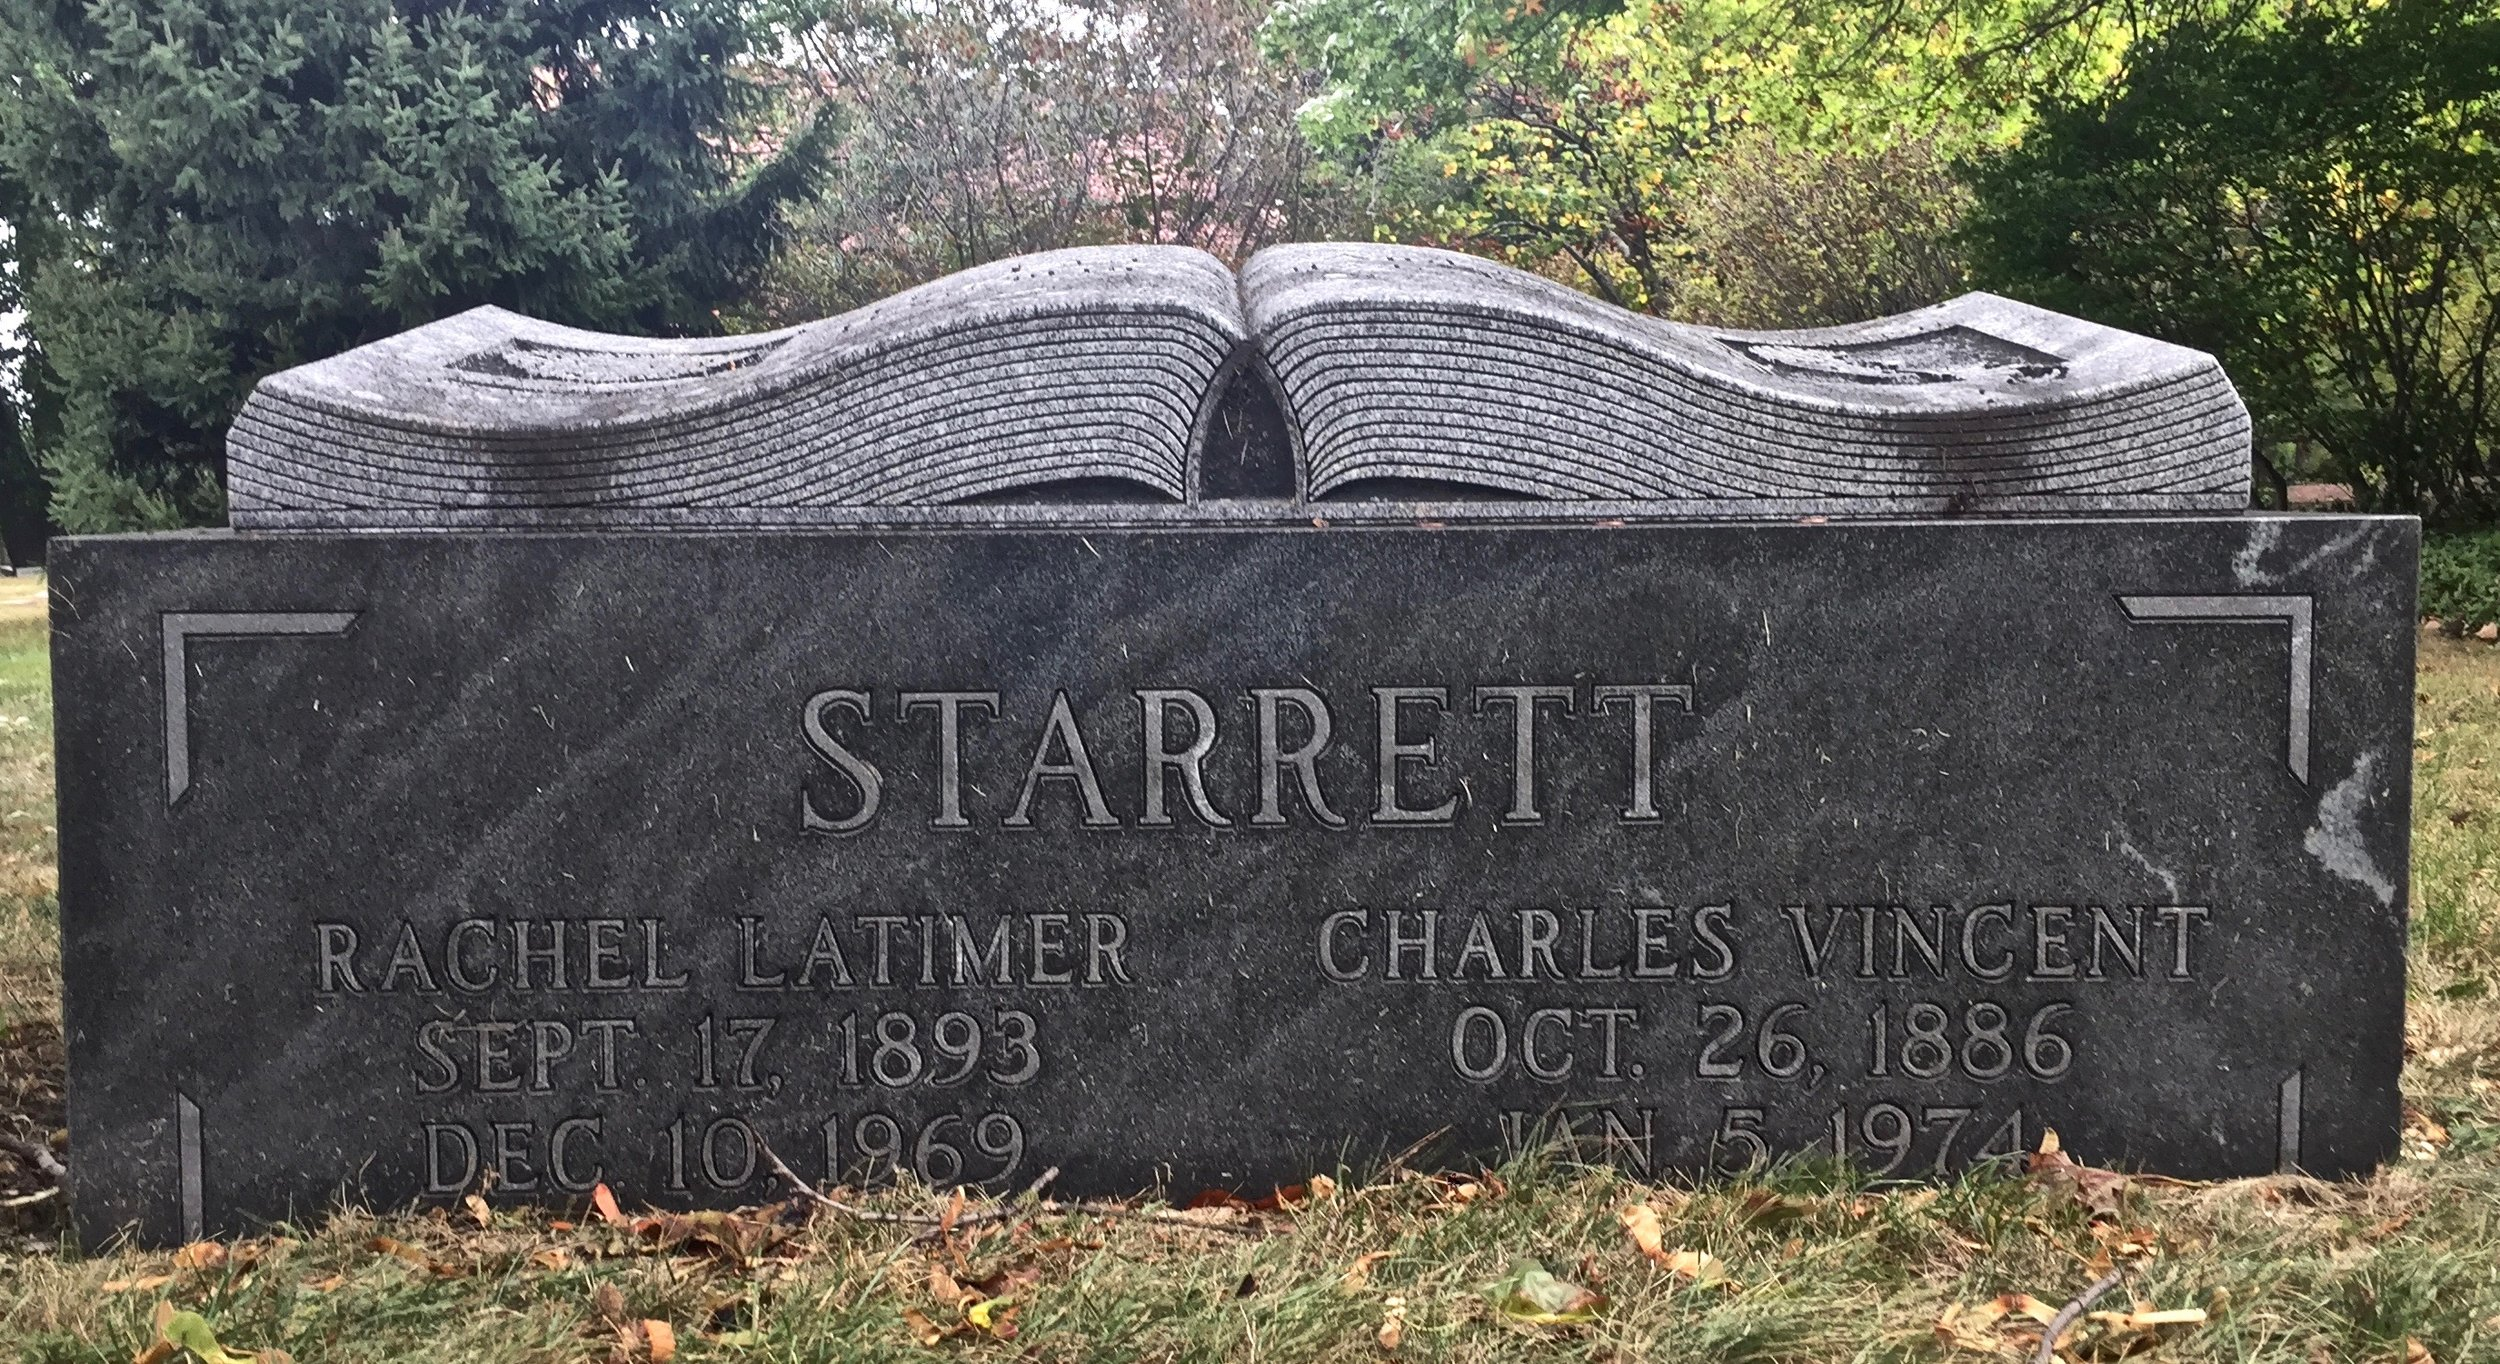 Starrett gravestone at Graceland Cemetery in Chicago.